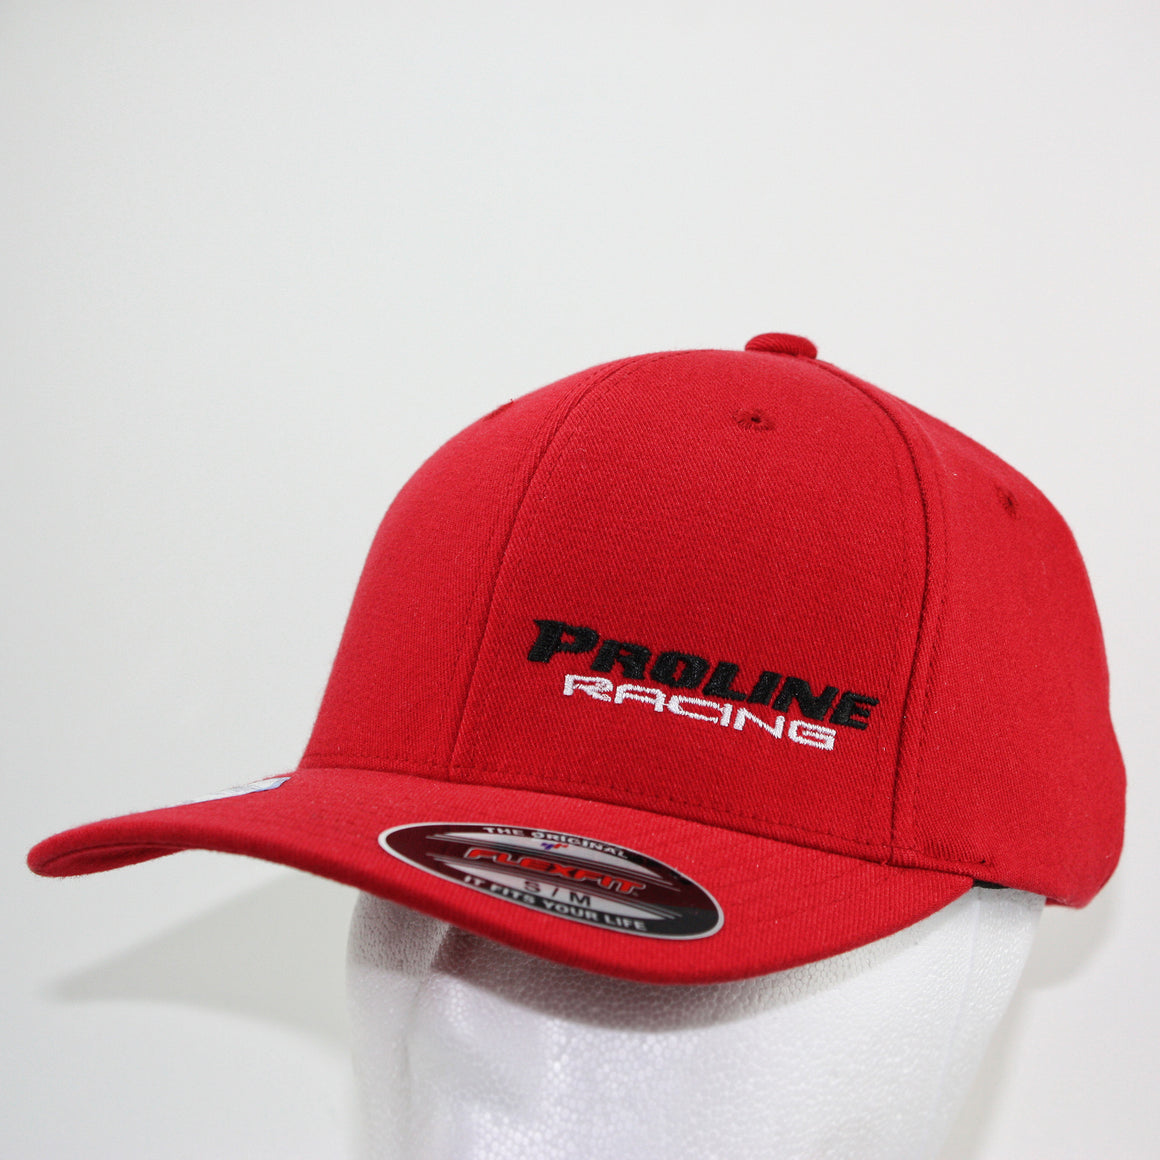 PLR FLEXFIT HAT Small/Medium / Red - Pro Line Racing - 4